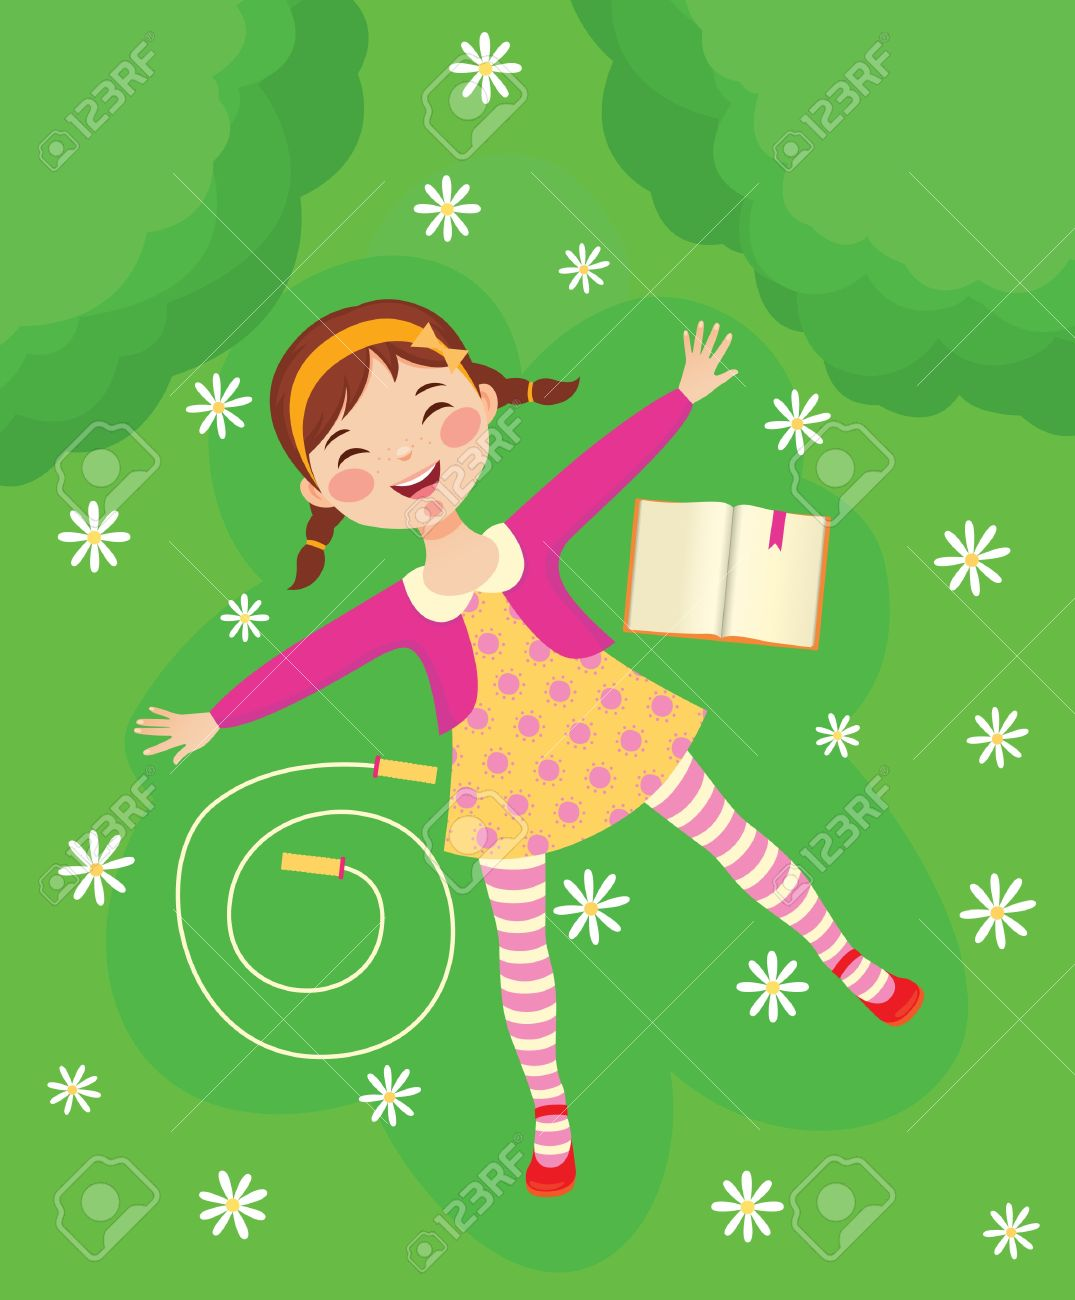 A little girl lay on the grass clipart.